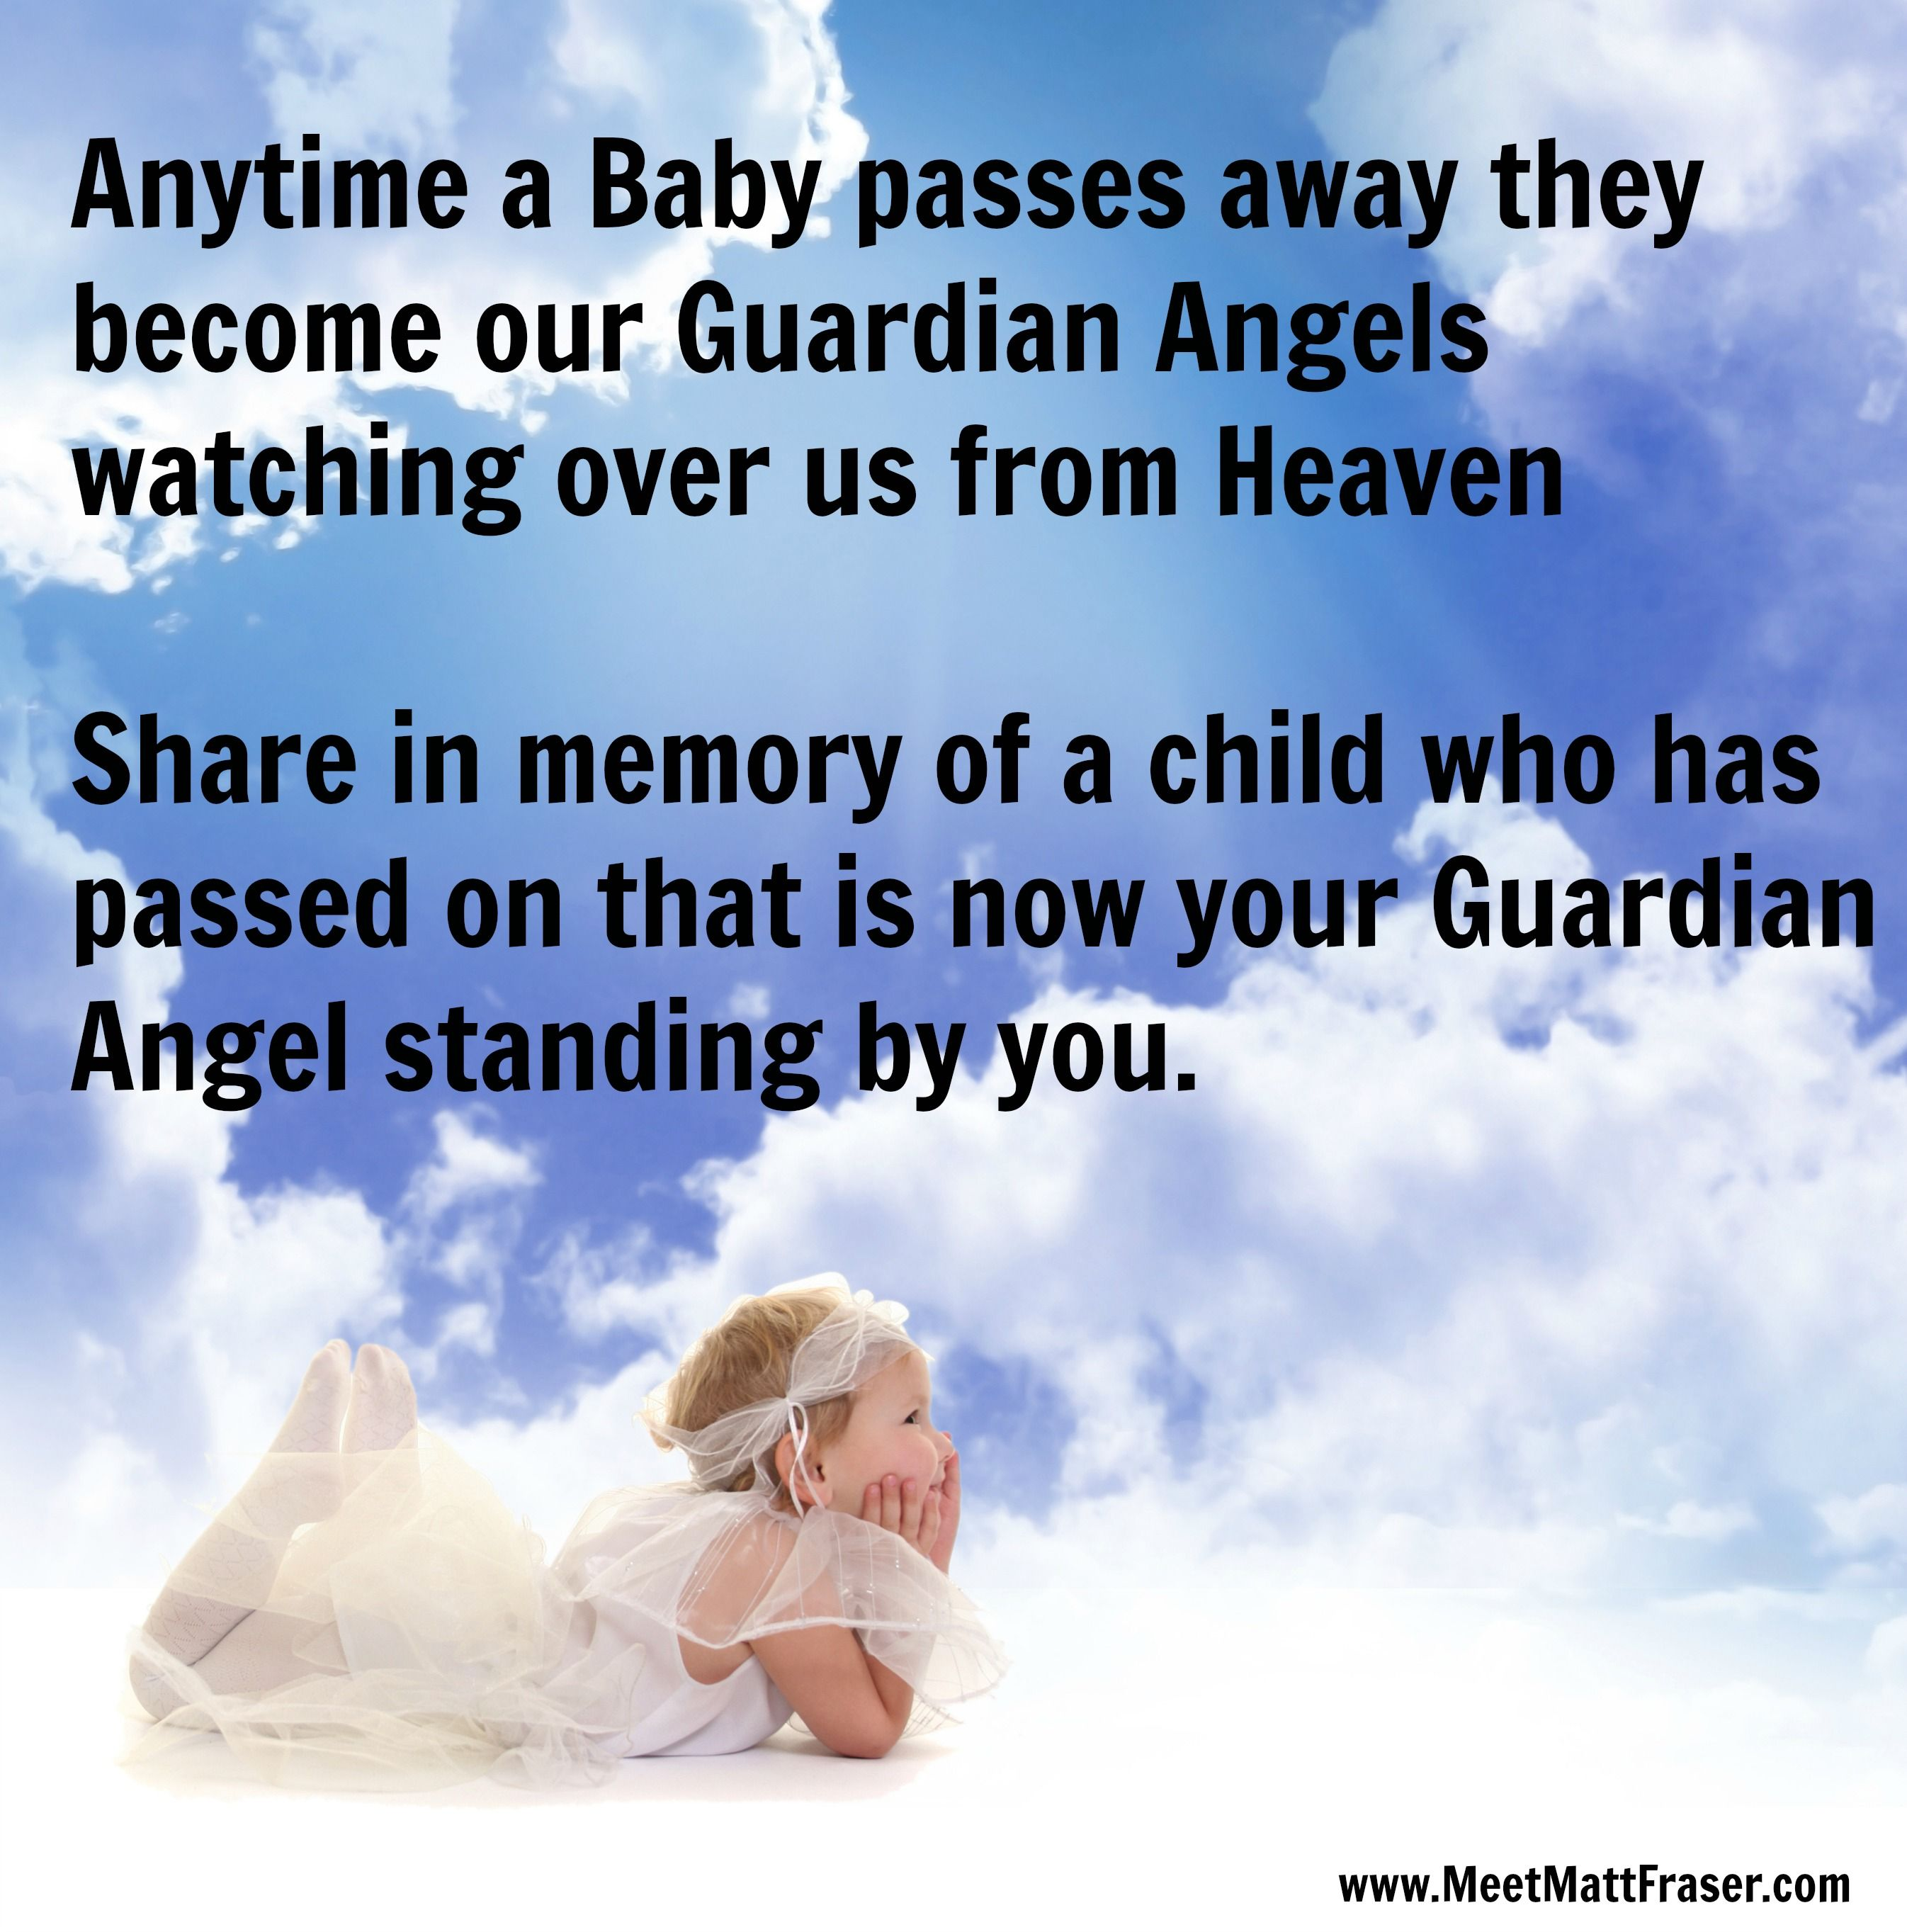 Baby Guardian Angel Quotes: Anytime A Baby Passes Away They Become Our Guardian Angels